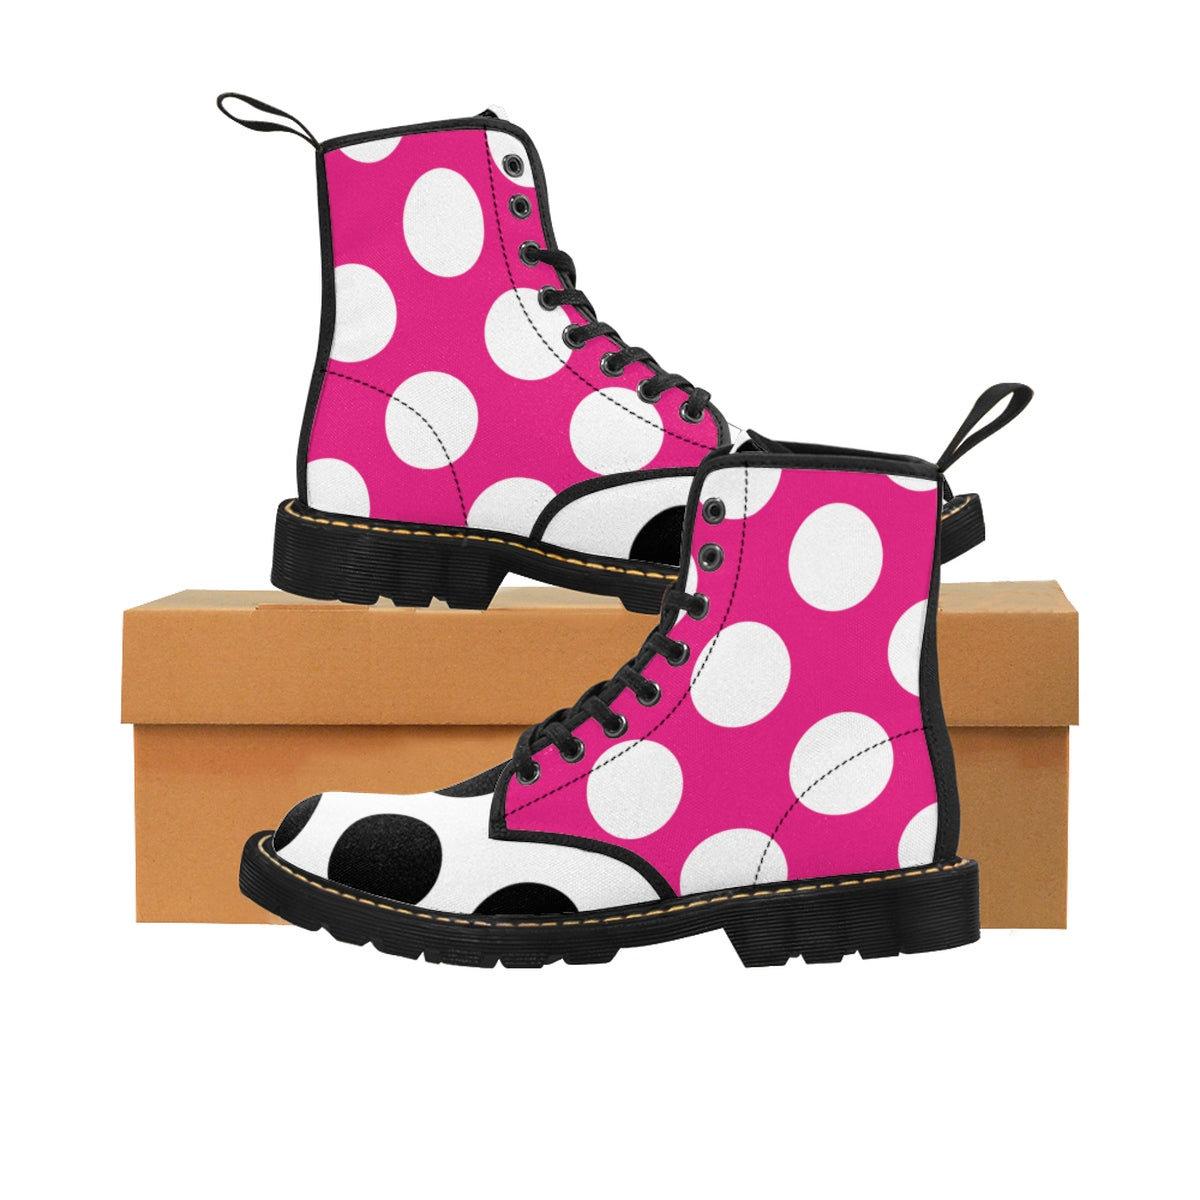 Pink Black and White Polka Dot Kids' Martin Boots Shoes - Polka Dotted All The Things Boutique